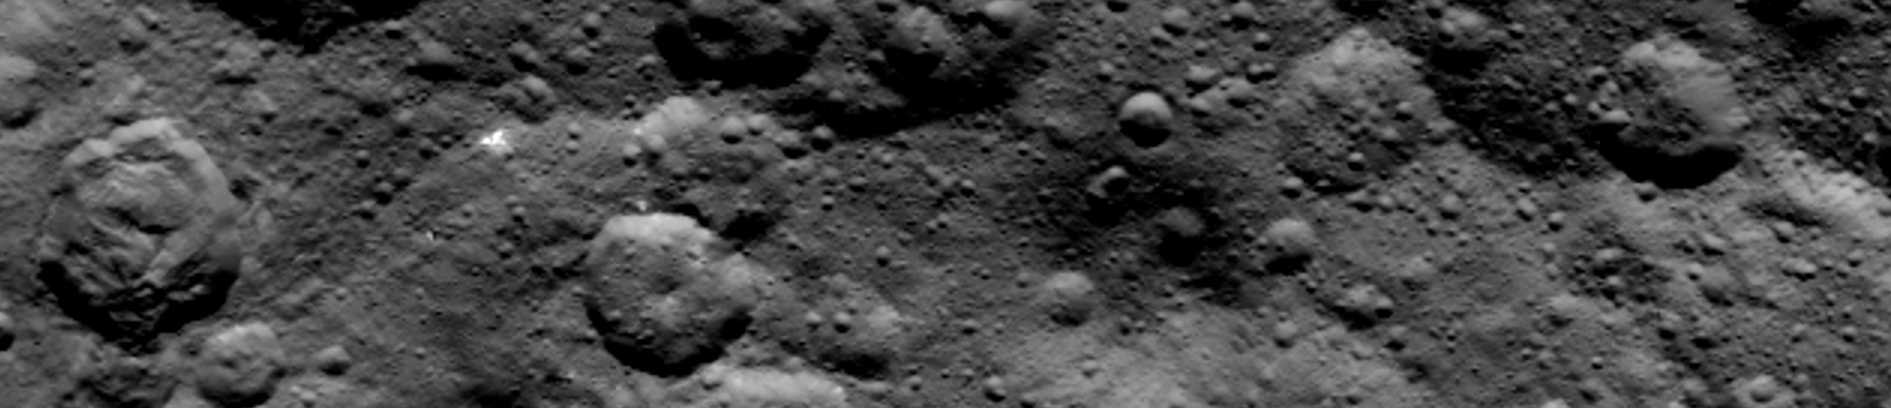 Press release - SwRI-led team finds evidence for carbon-rich surface on Ceres